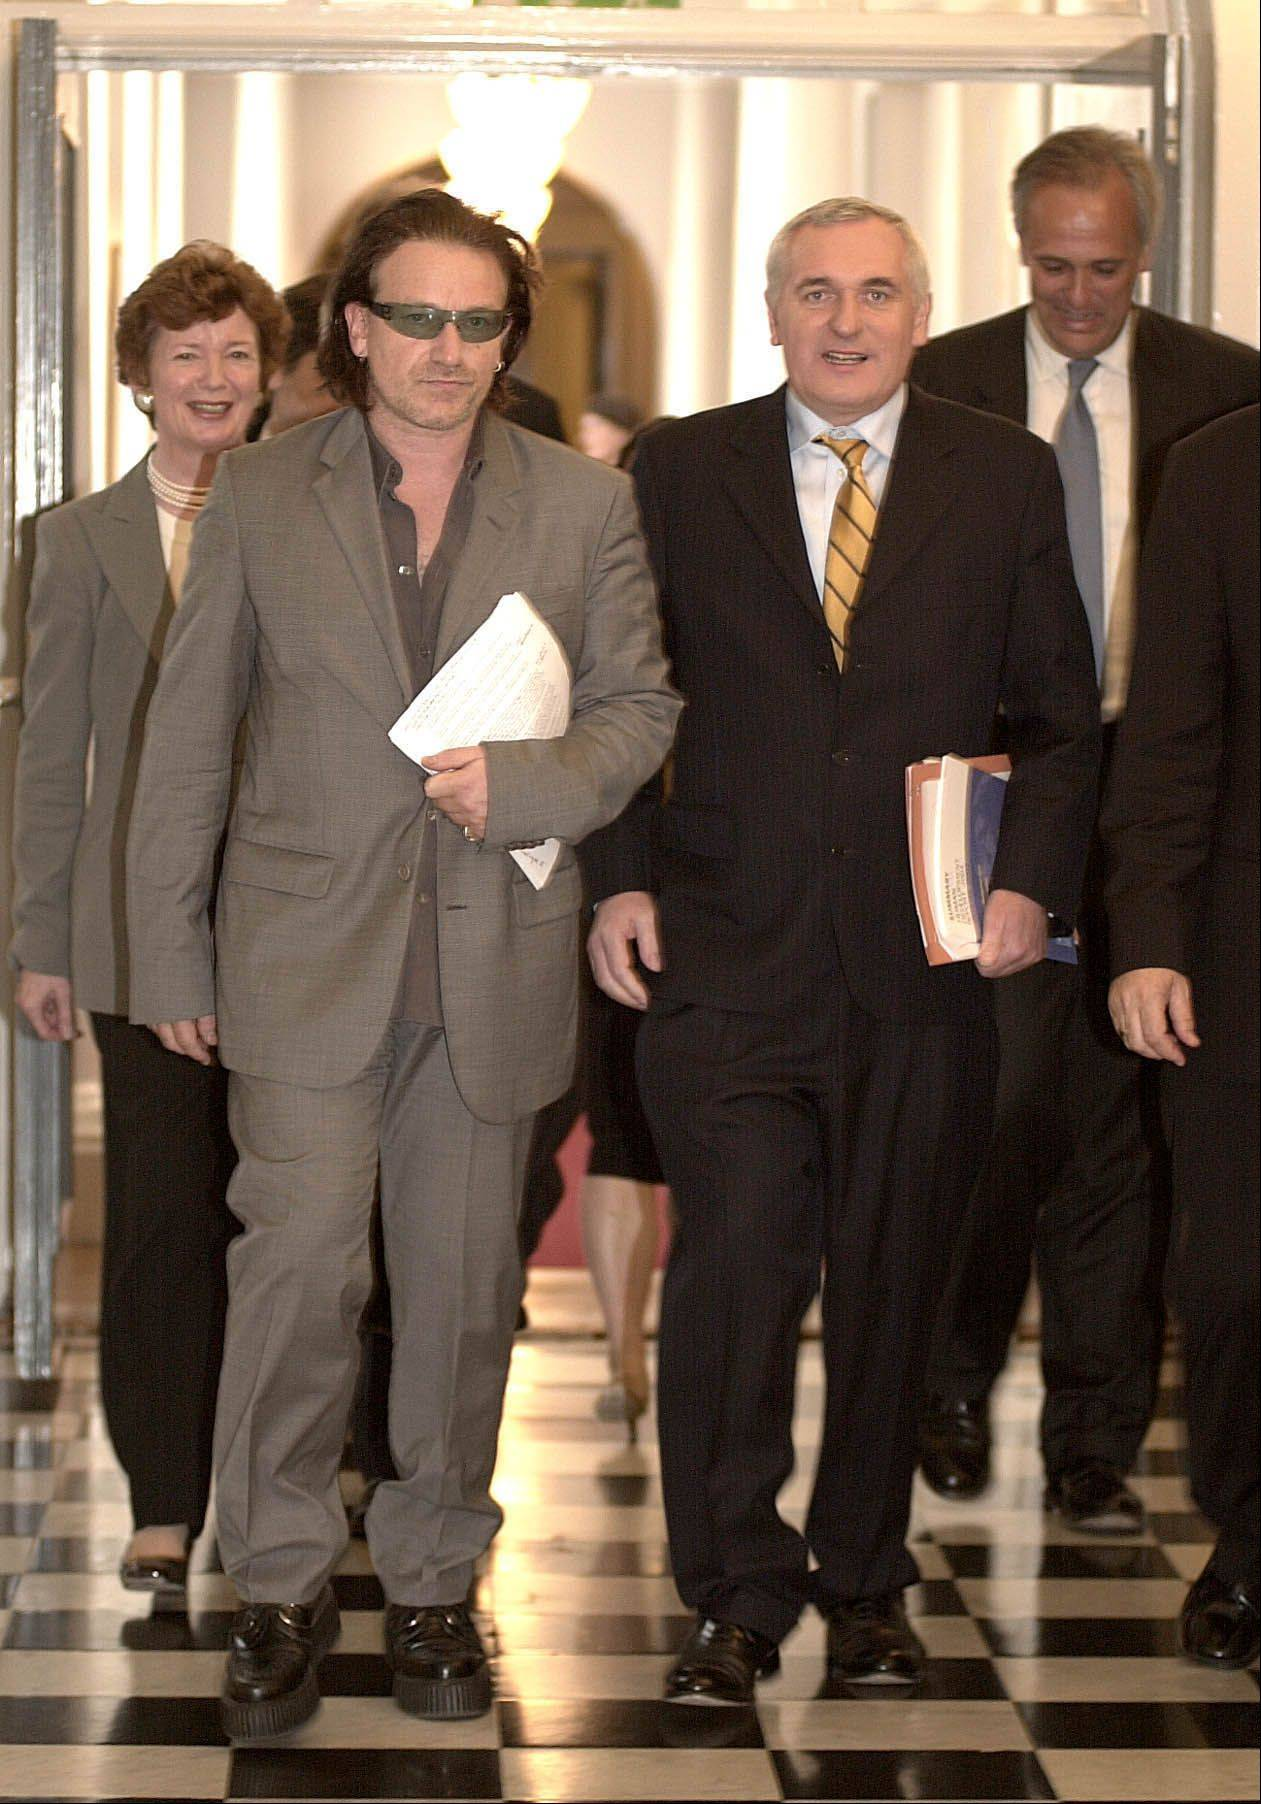 Irish Rock star Bono, arrives with the Irish Prime Minister Bertie Ahern, right, for the Global Launch of the UN Human Development Report 2003 at Government Buildings in Dublin, Ireland, on Tuesday July 8, 2003.